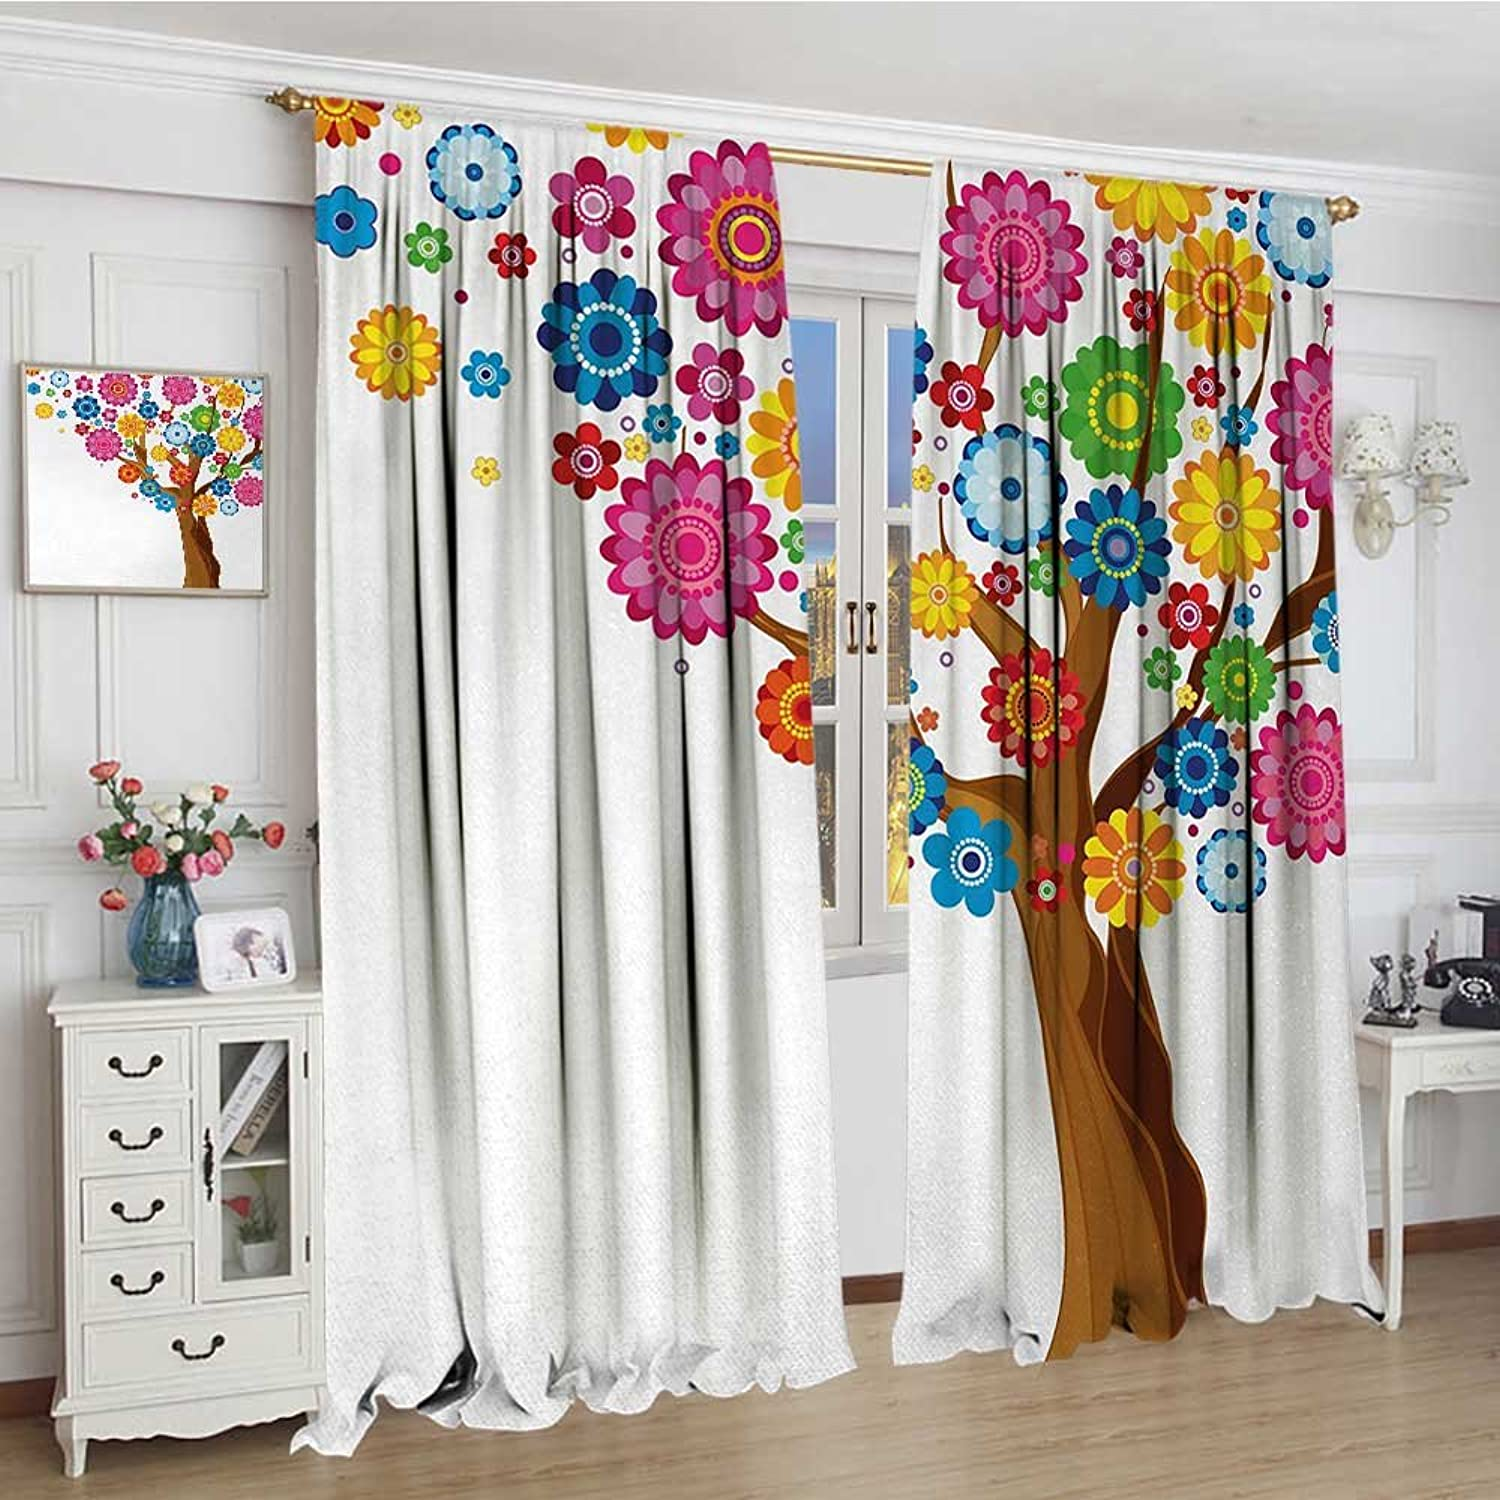 Smallbeefly Floral Widened Blackout Window Curtain Spring Flower Tree Flourishing Vibrant Blossoms Foliage Petals Kids Summer Print Waterproof Window Curtain 120 x72  Multicolor